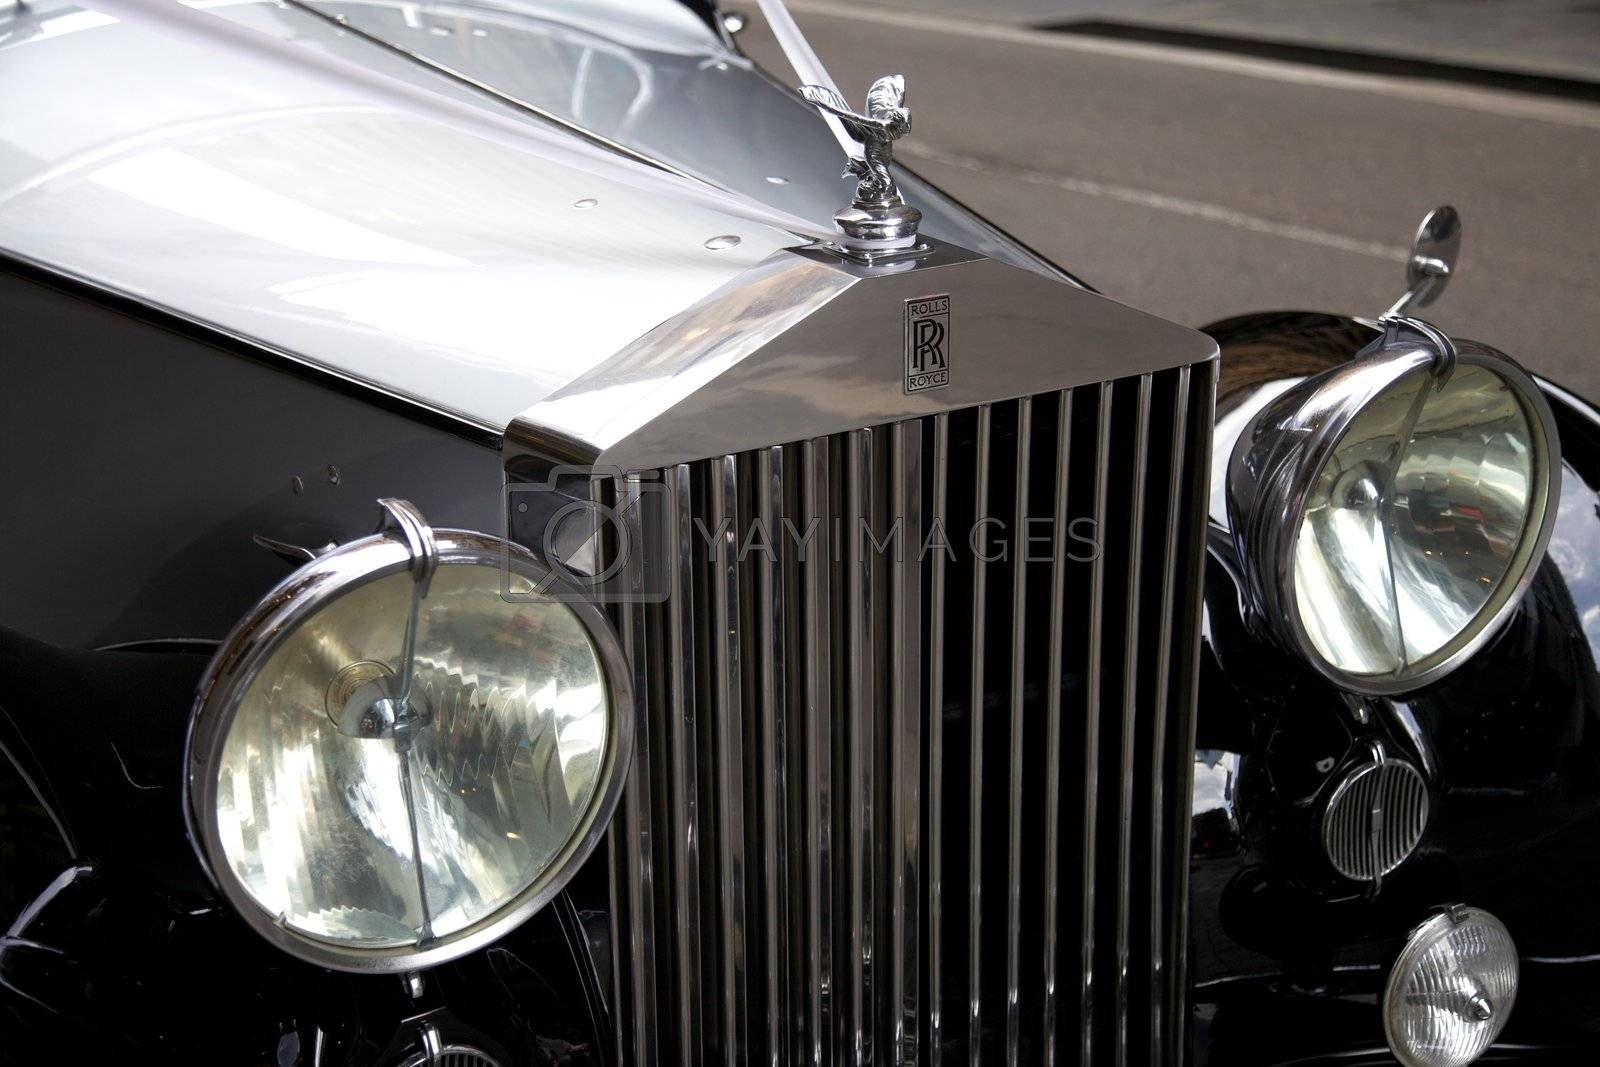 Classic White Rolls Royce With the Famous Flying Lady Emblem Mascot